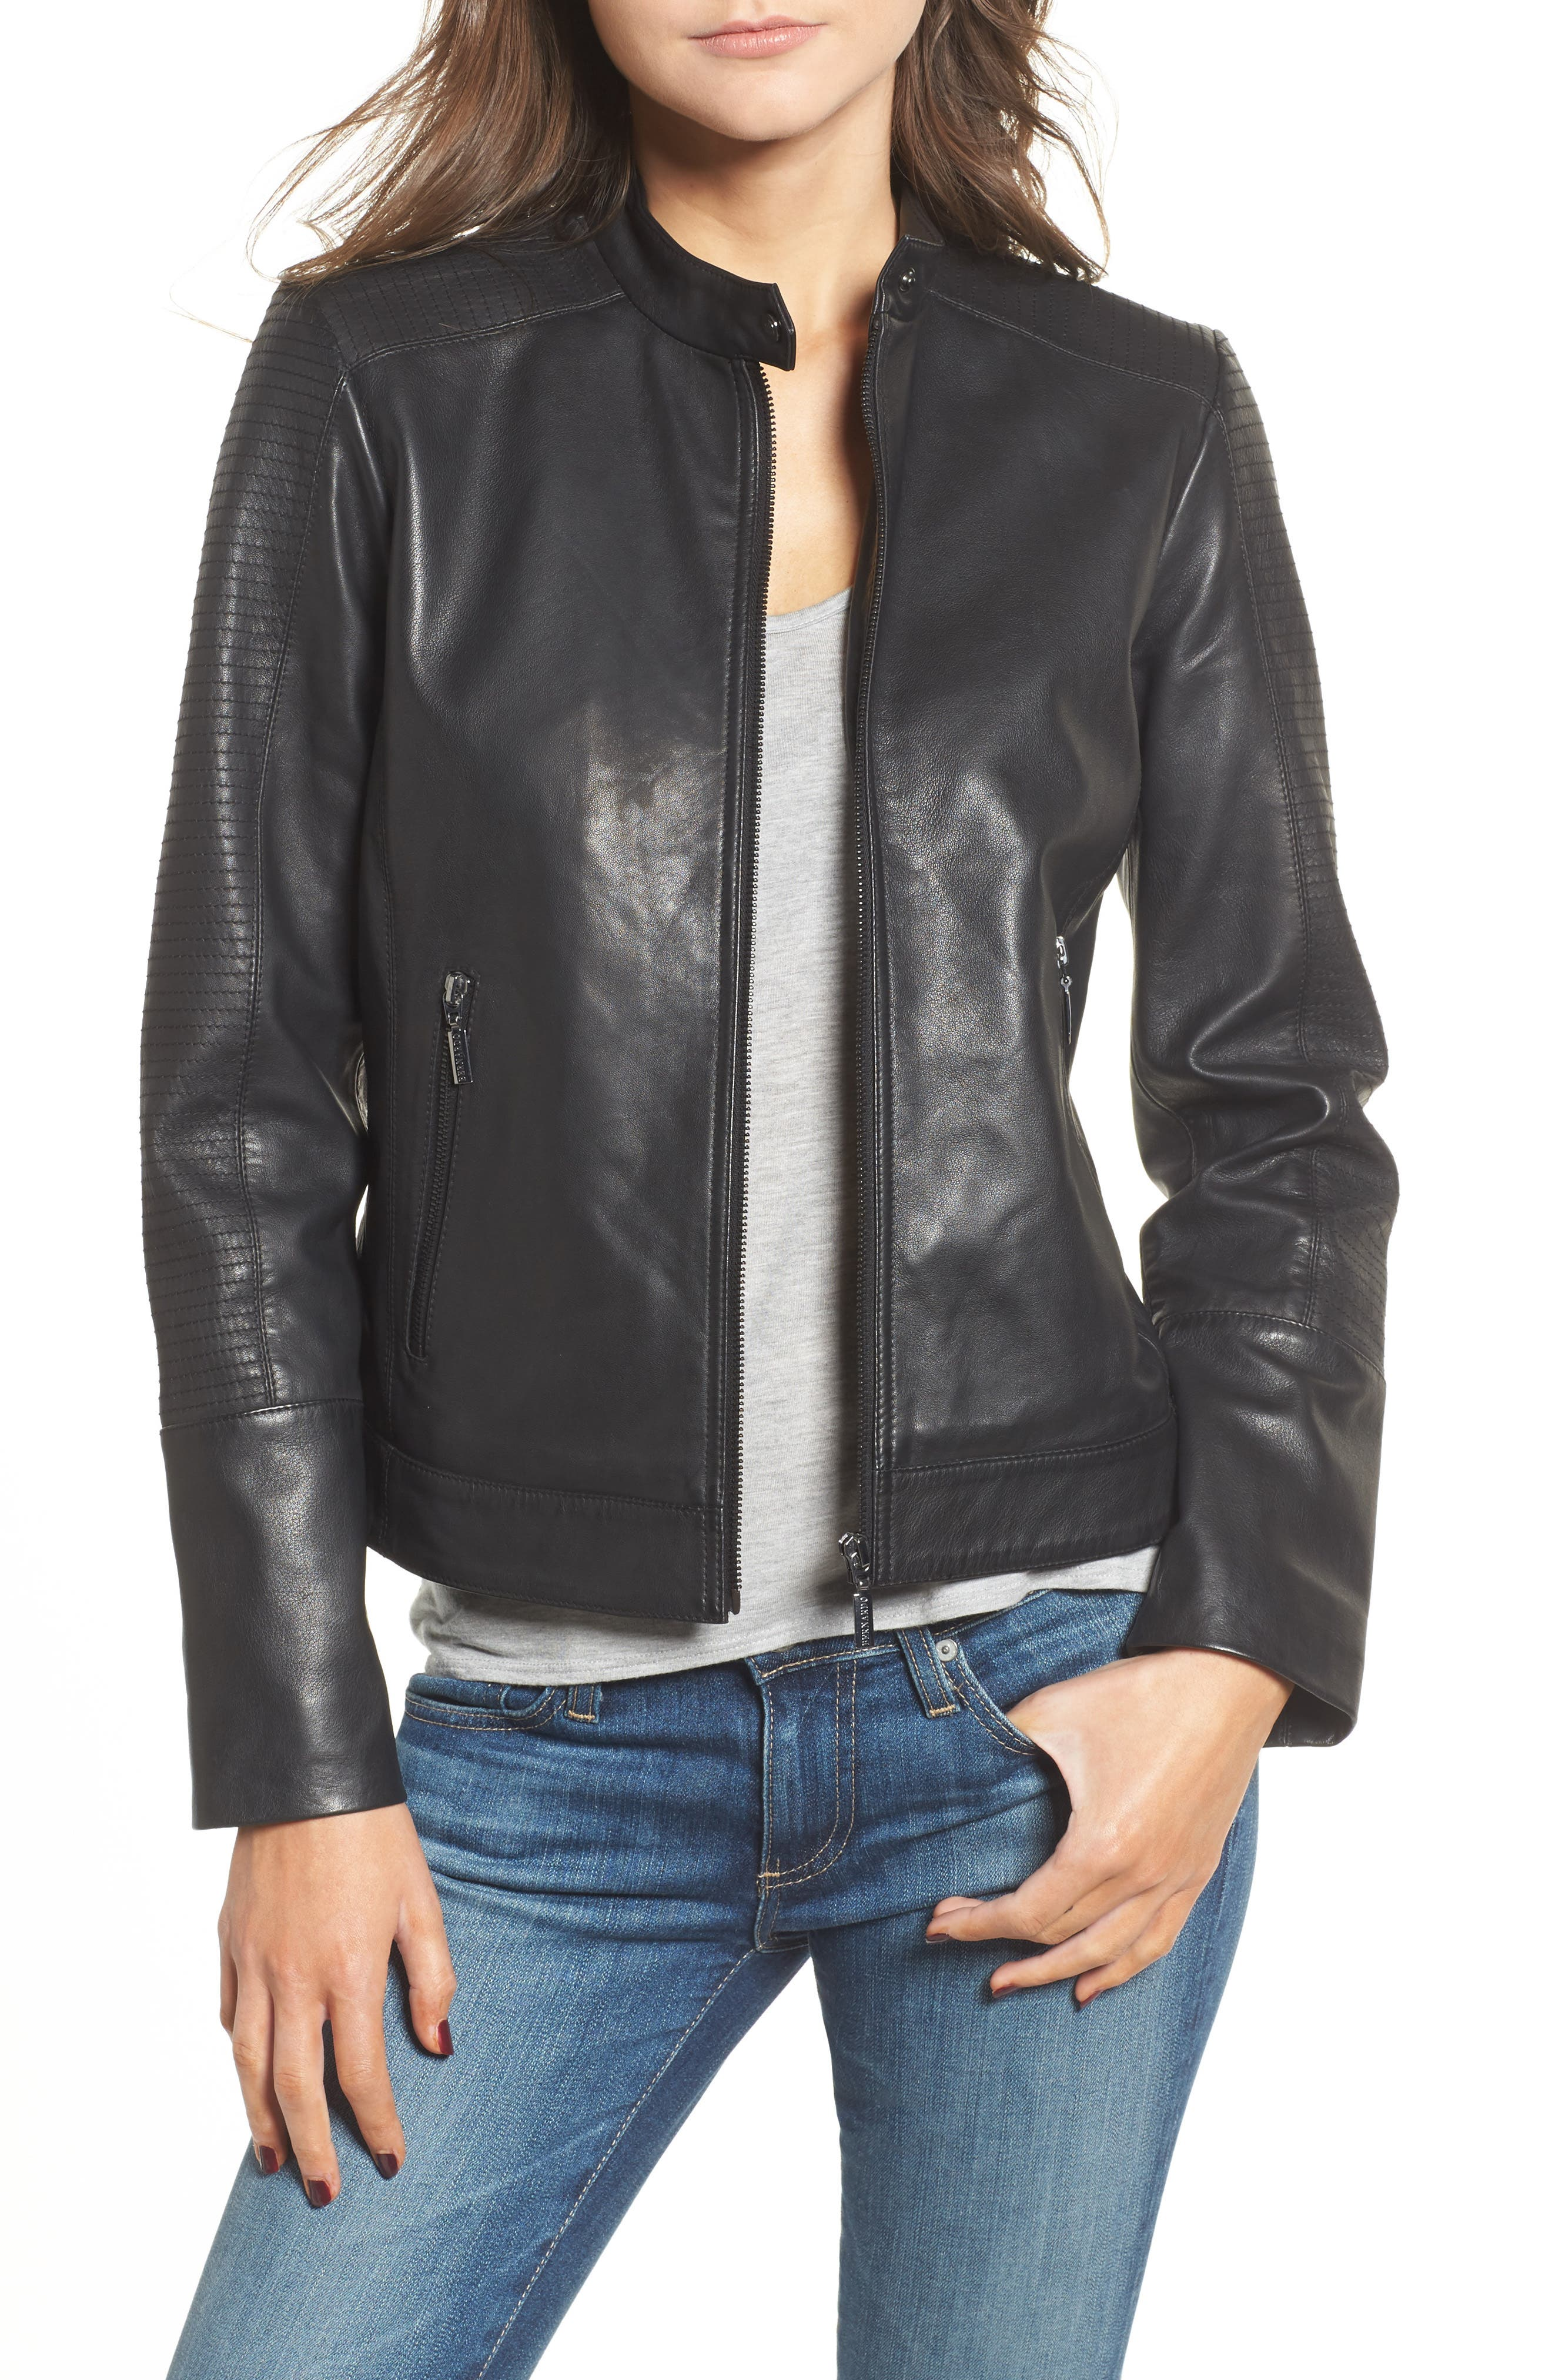 Kirwin Leather Moto Jacket,                             Main thumbnail 1, color,                             001